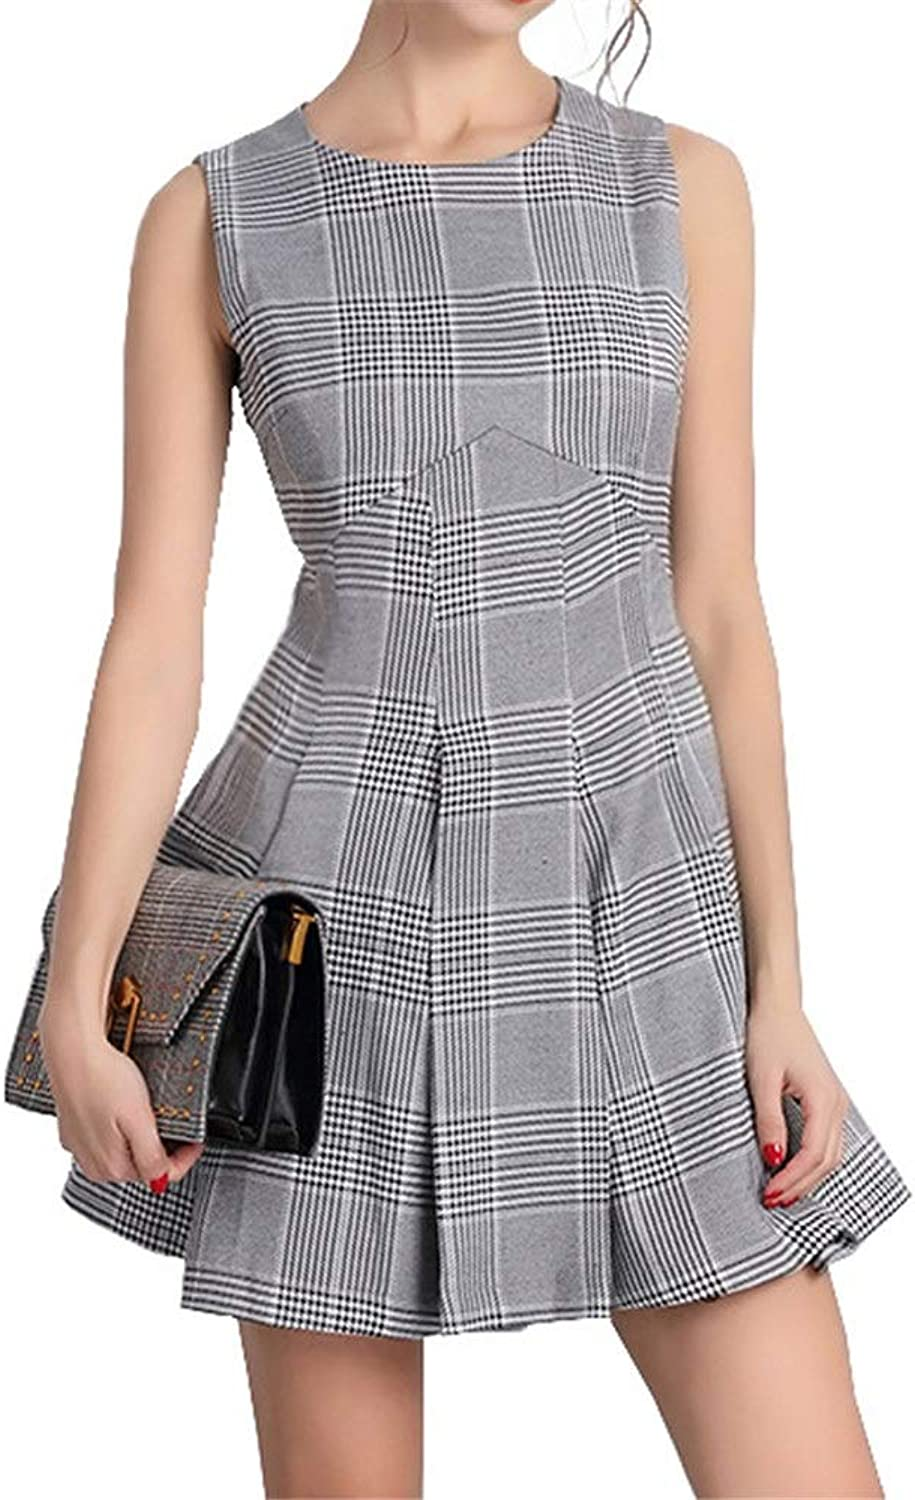 Ladies Summer Loose Casual Dress Women Sleeveless Pleated Plaid Swing Mini Aline Dress Clubwear Cocktail Party Fit and Flare Dress Formal Evening Dress Casual Business Office Dress For Summer Shoppin